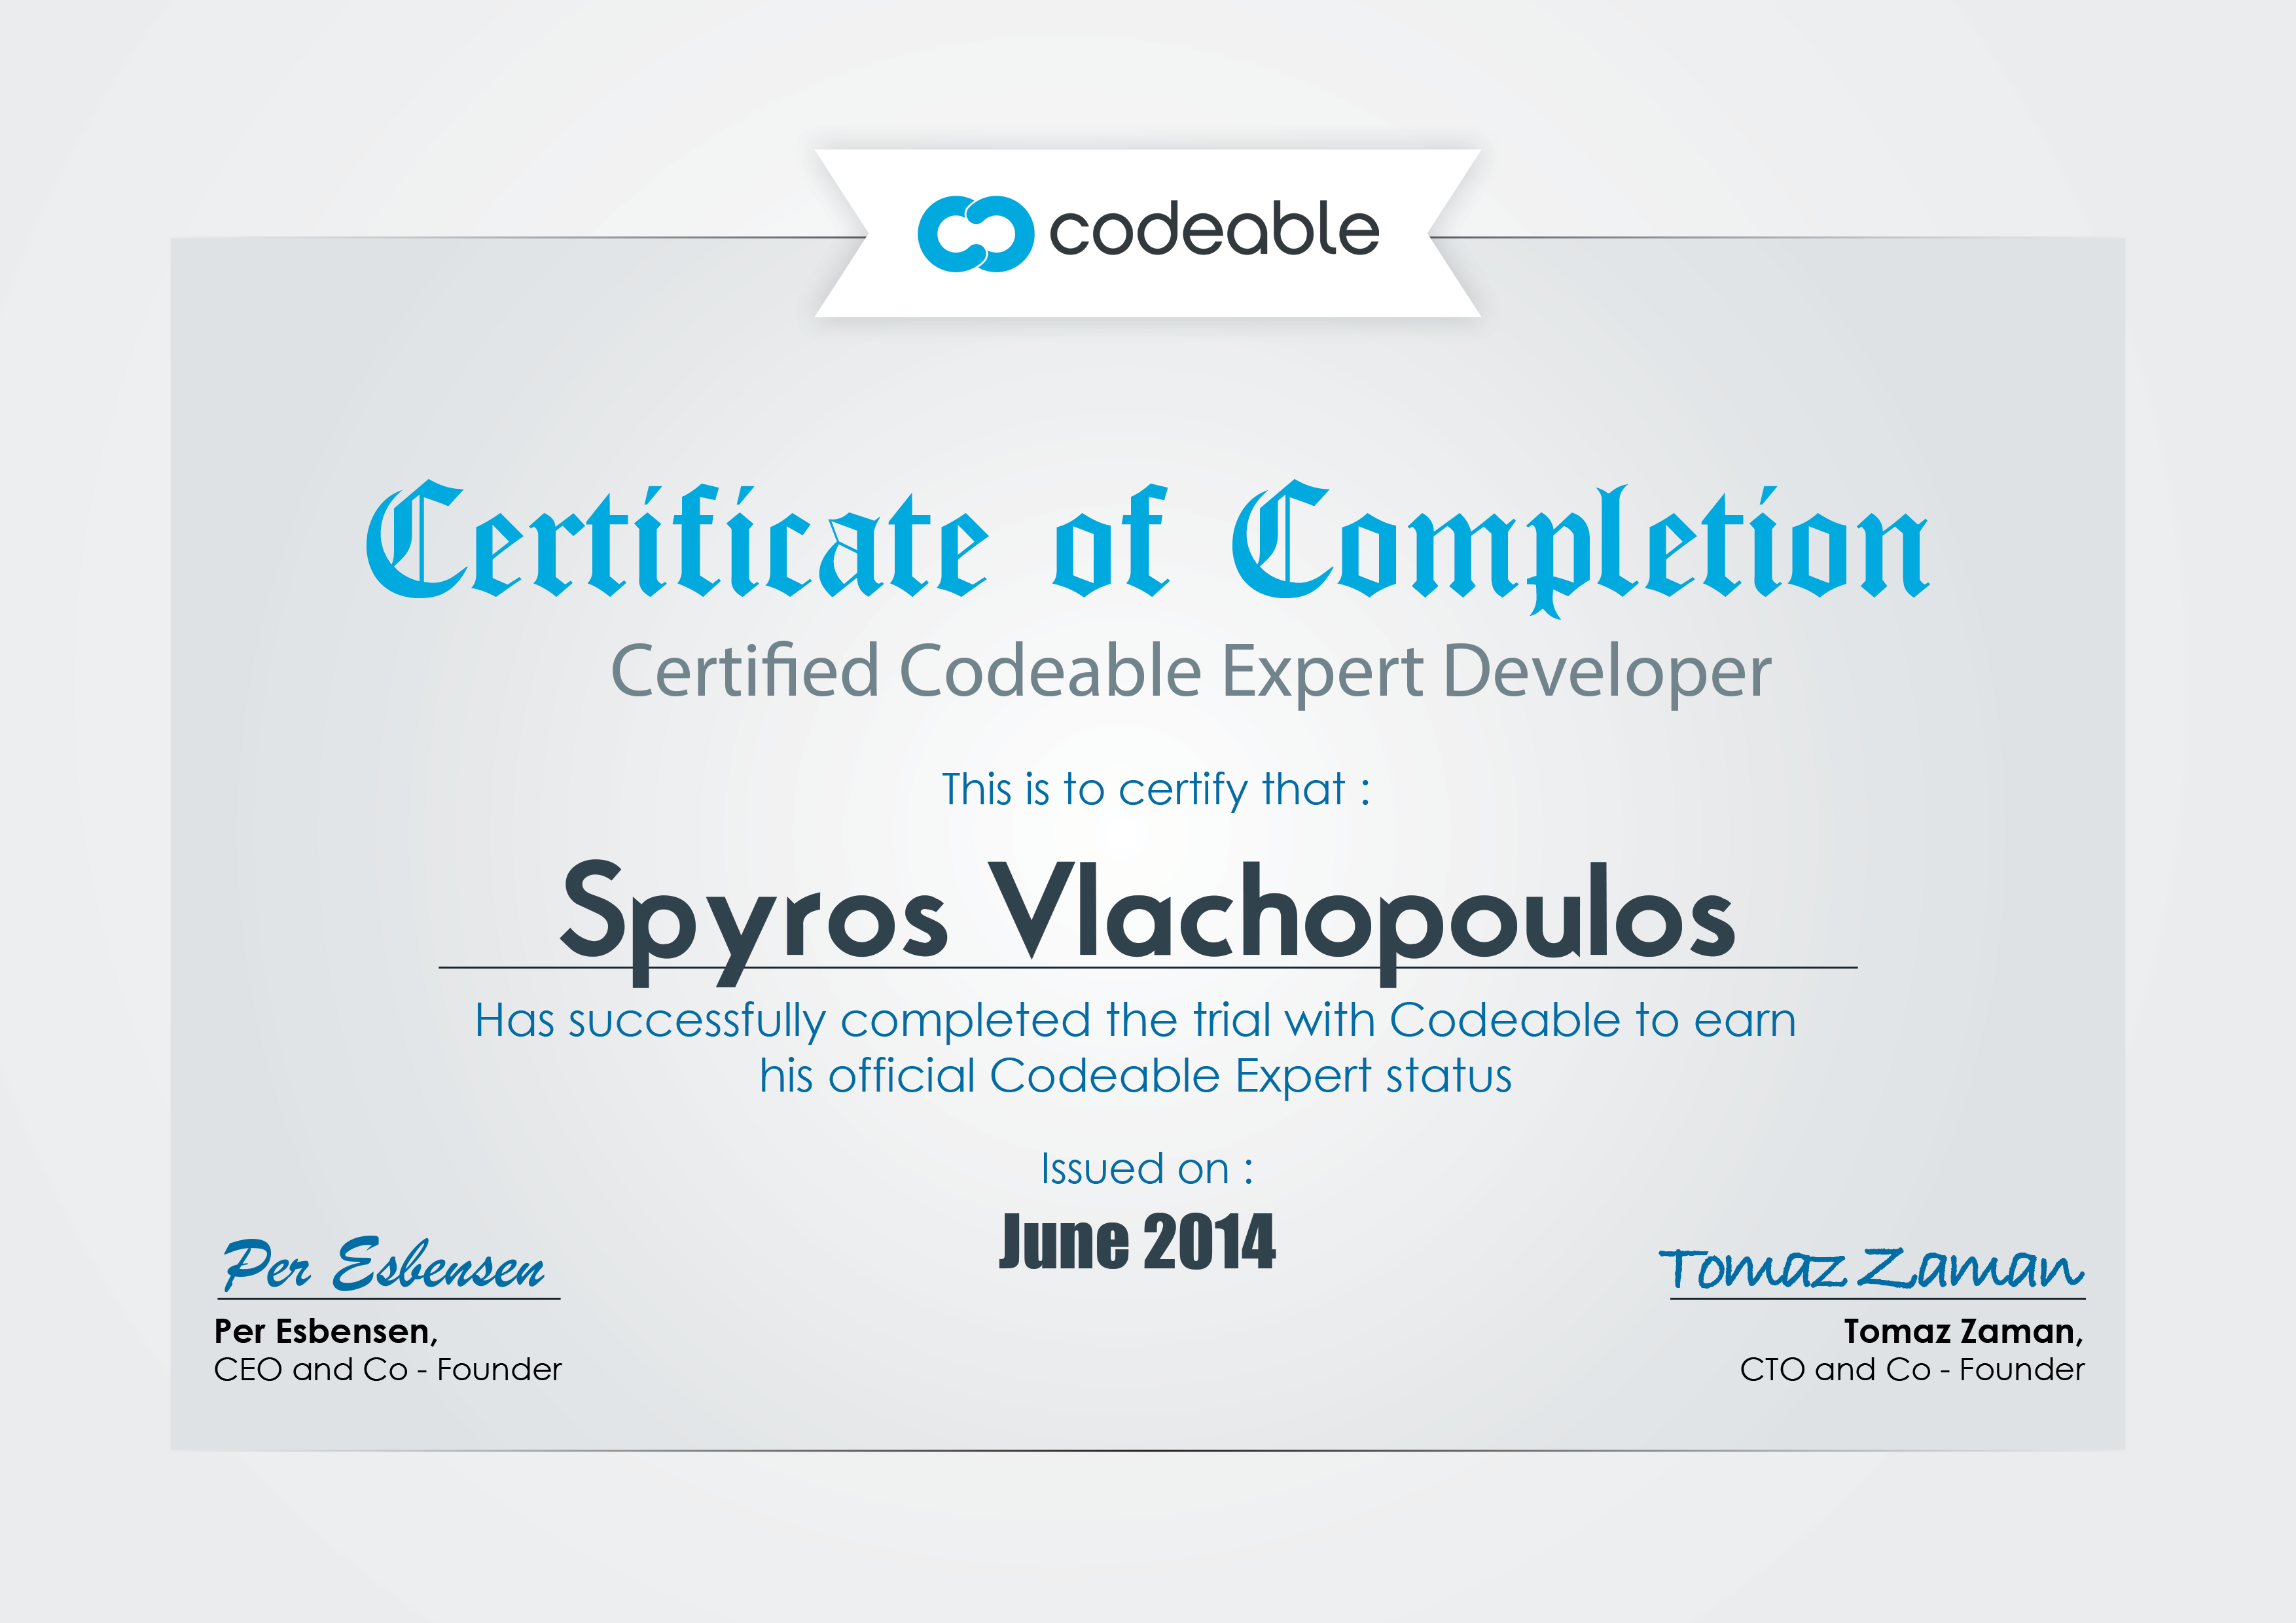 Spyros Vlachopoulos, Certified Codeable Expert Developer